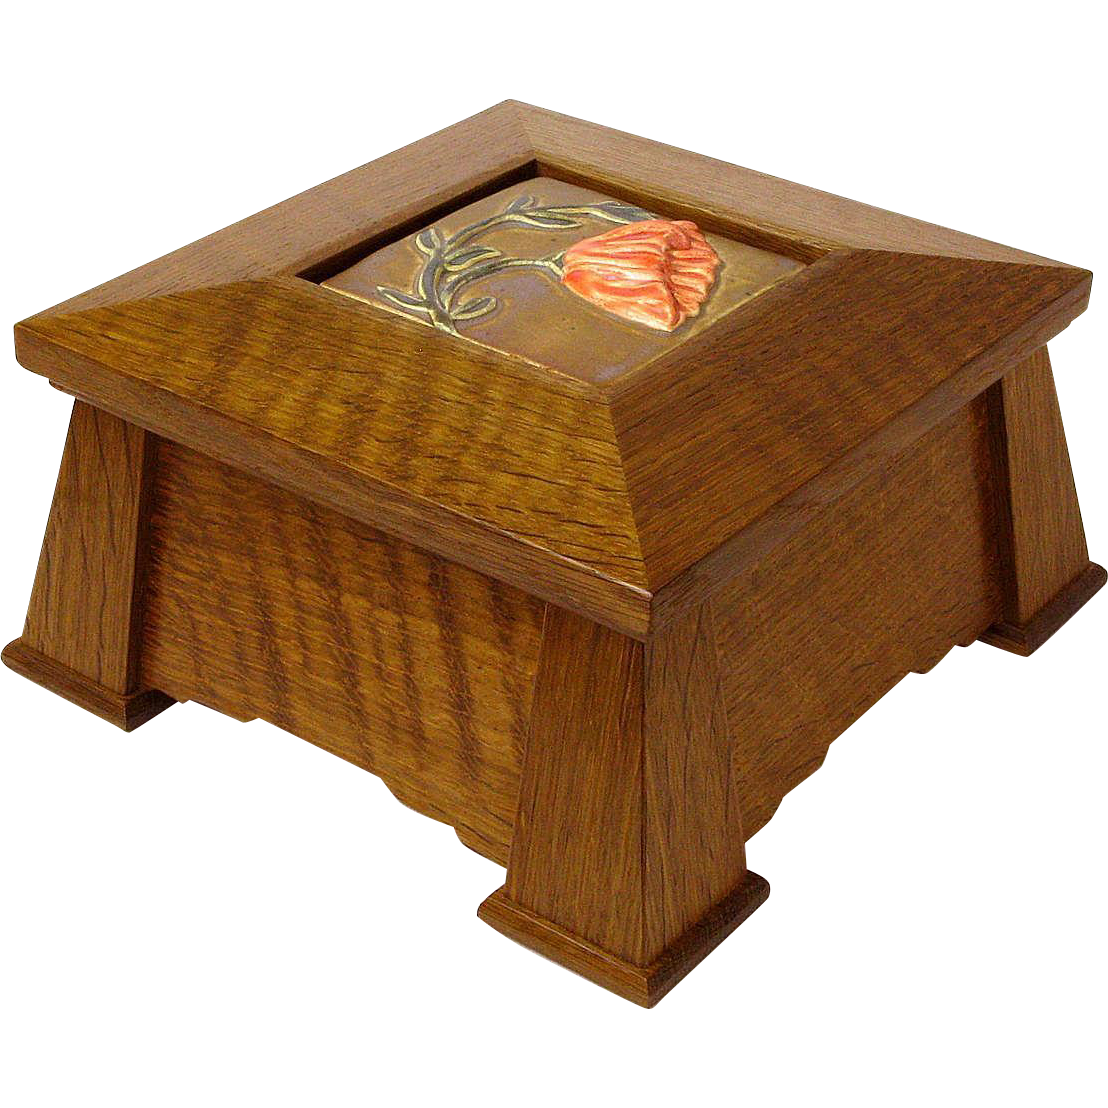 Mission Style Keepsake Dresser Jewelry Box w/ Inset Ceramic Tile, Artisan Made Sweetpea Cottage